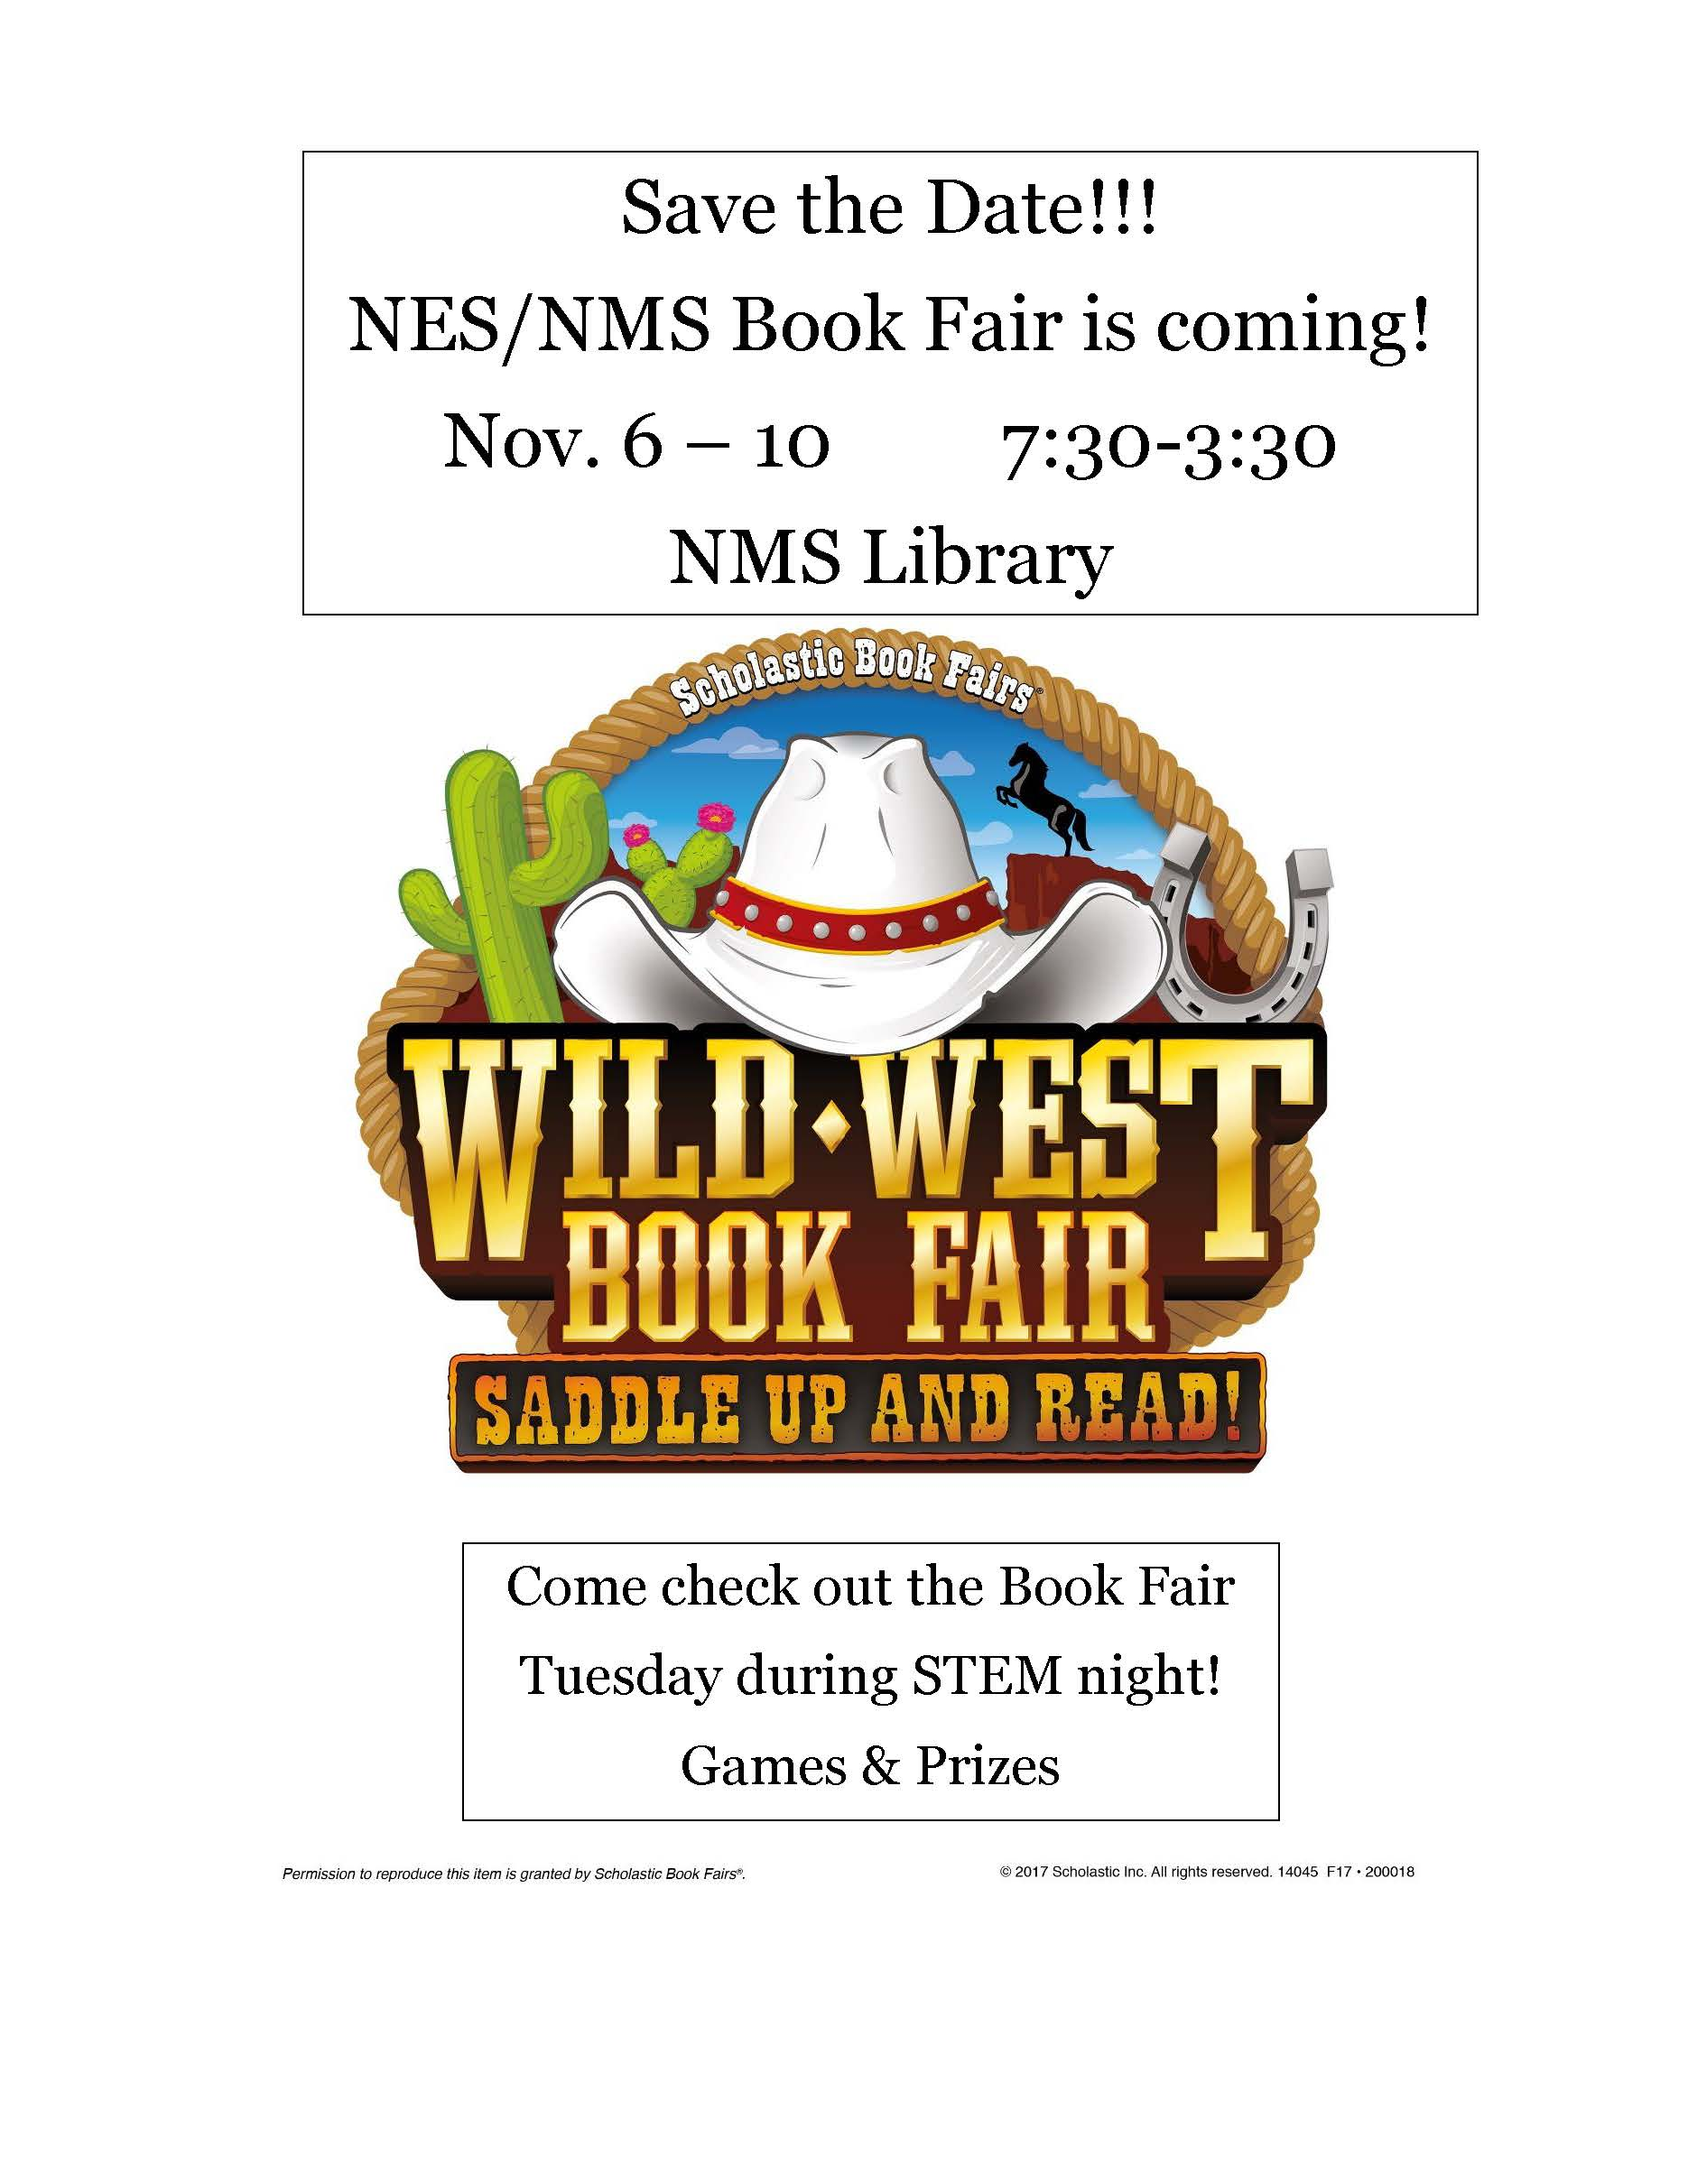 NES/NMS Wild West Book Fair